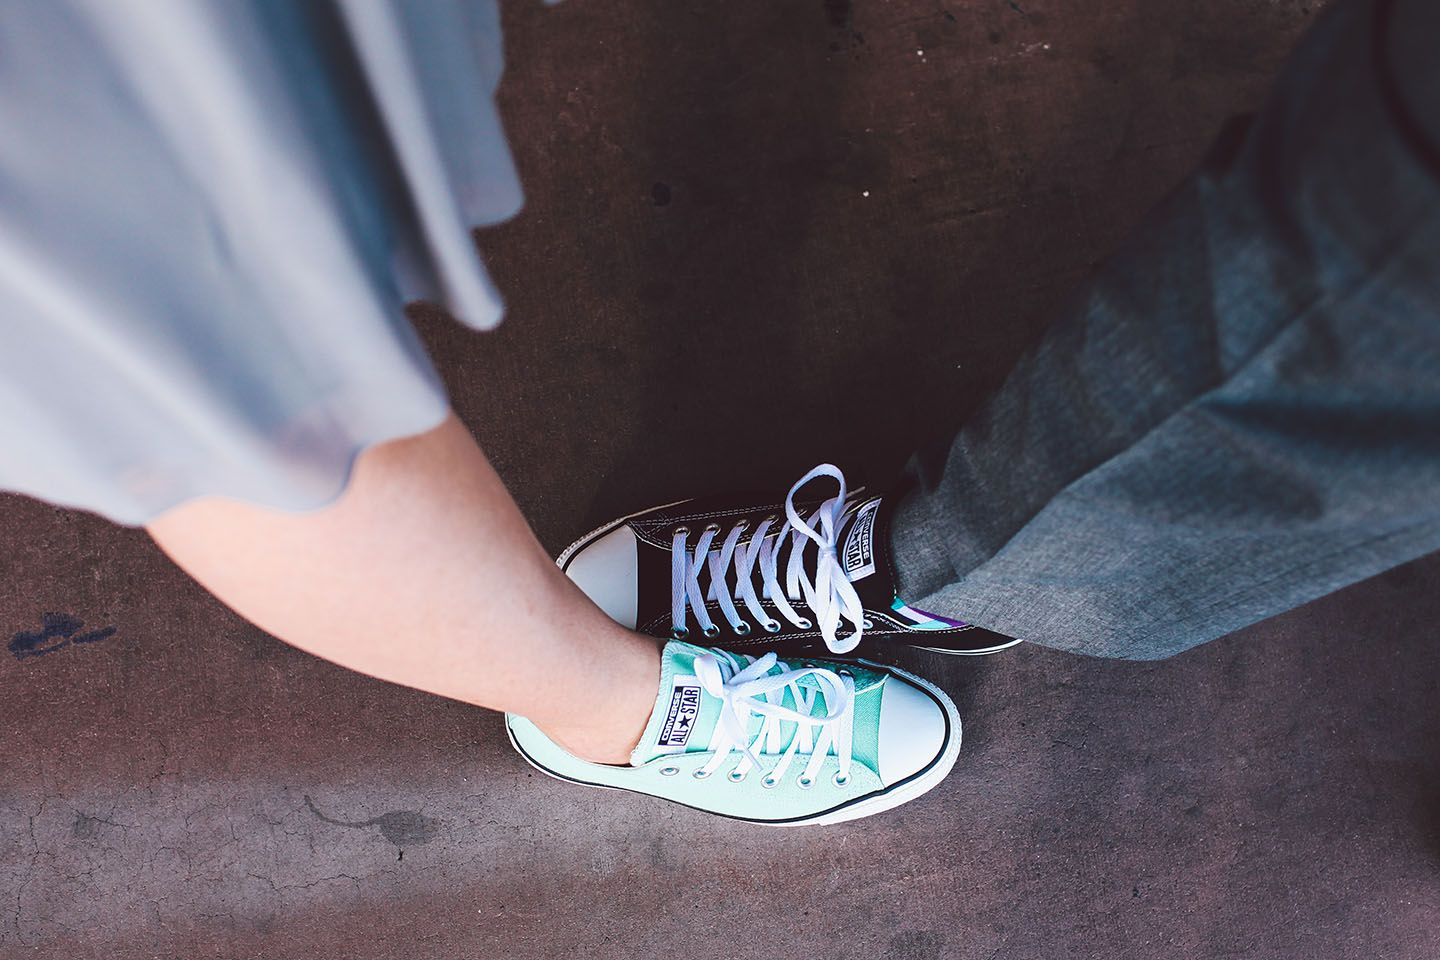 The Following Is One Of The Chapters From My Book You And Your Gender Identity A Guide To Discovery Released September 20 Sneakers Converse All Star Converse